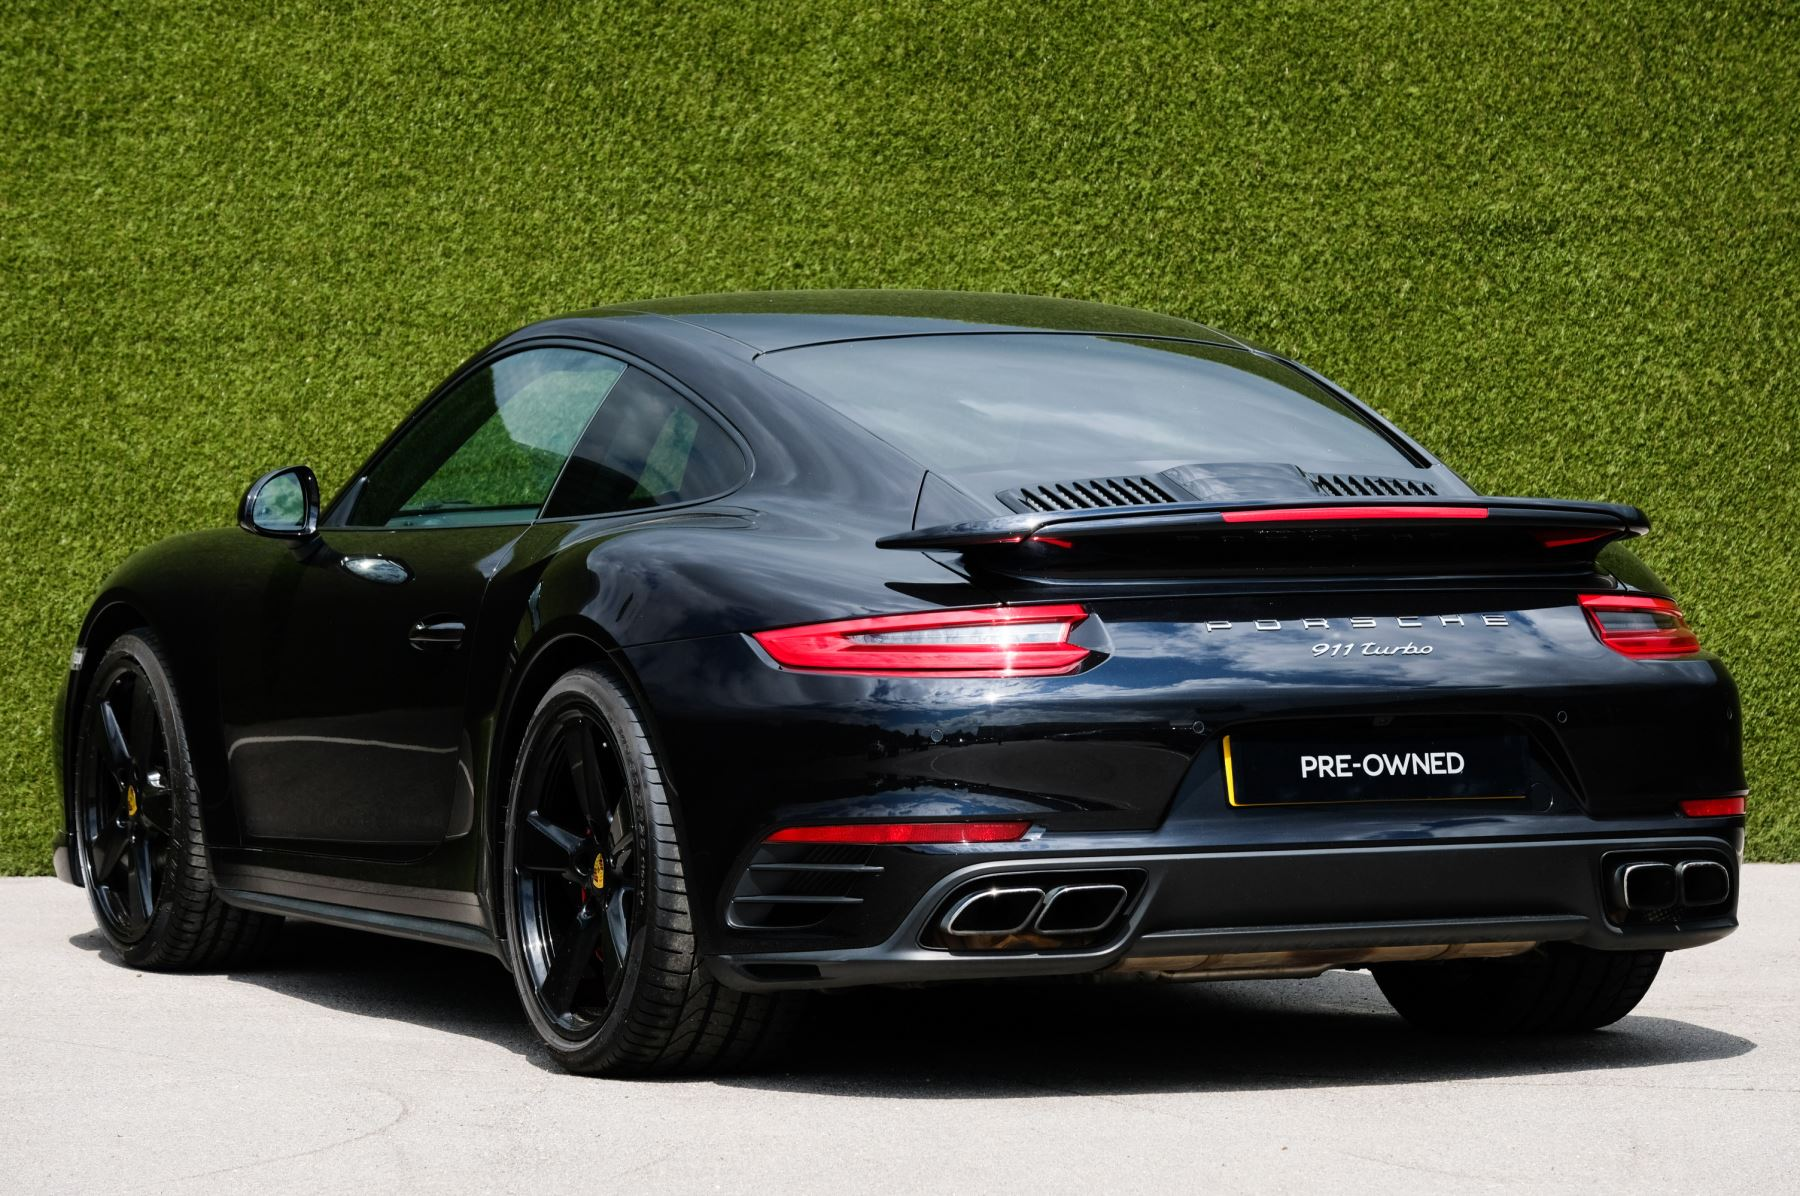 Porsche 911 PDK - Carbon interior package - Privacy Glass - 20 inch Sport Classic wheels image 5